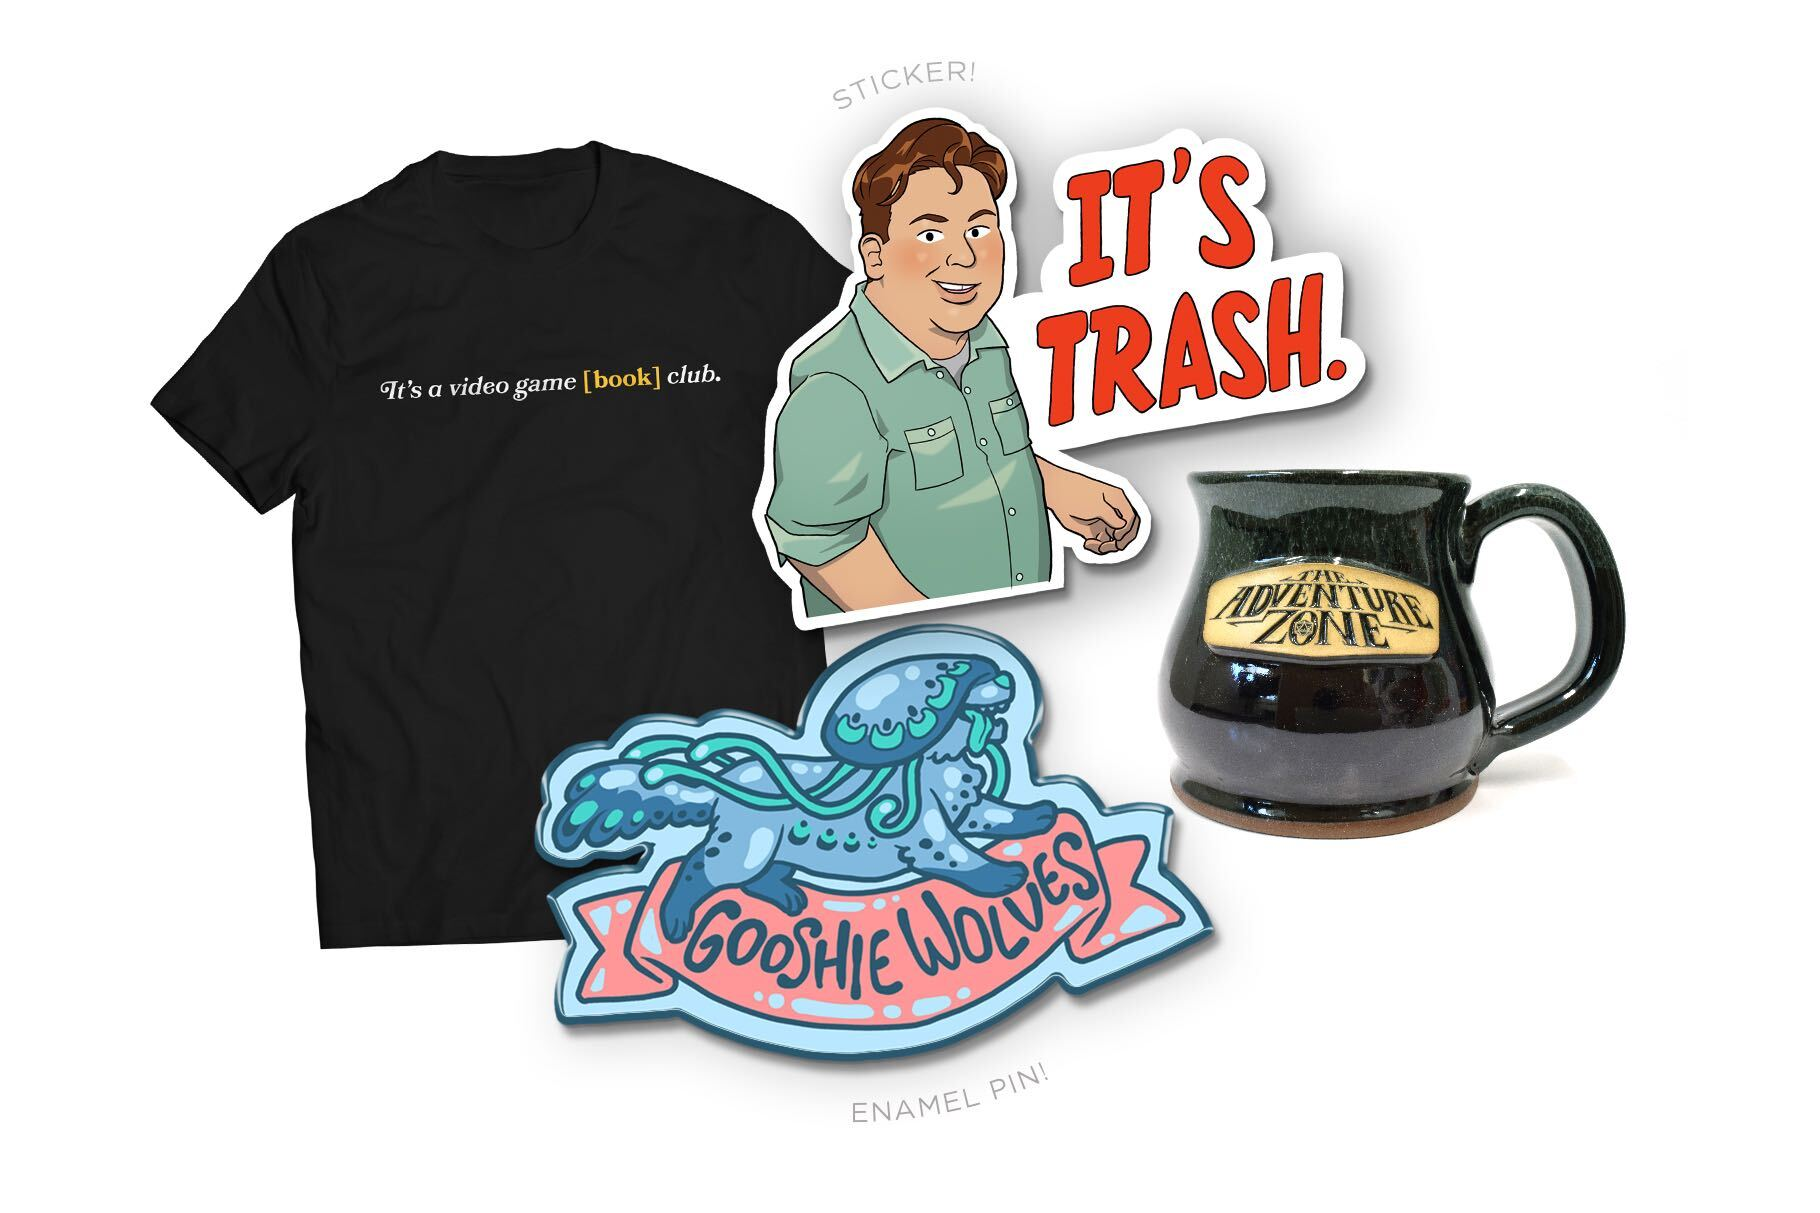 """On the left is a black tee-shirt that says """"It's a video game [book] club."""" The top-center item is an illustrated sticker of Justin in a green shirt that says, """"It's trash."""" The bottom-center item is an enamel pin of a blue jellyfish dog with a banner that says, """"Gooshie Wolves"""". On the right is a green stoneware mug with The Adventure Zone logo on the front."""